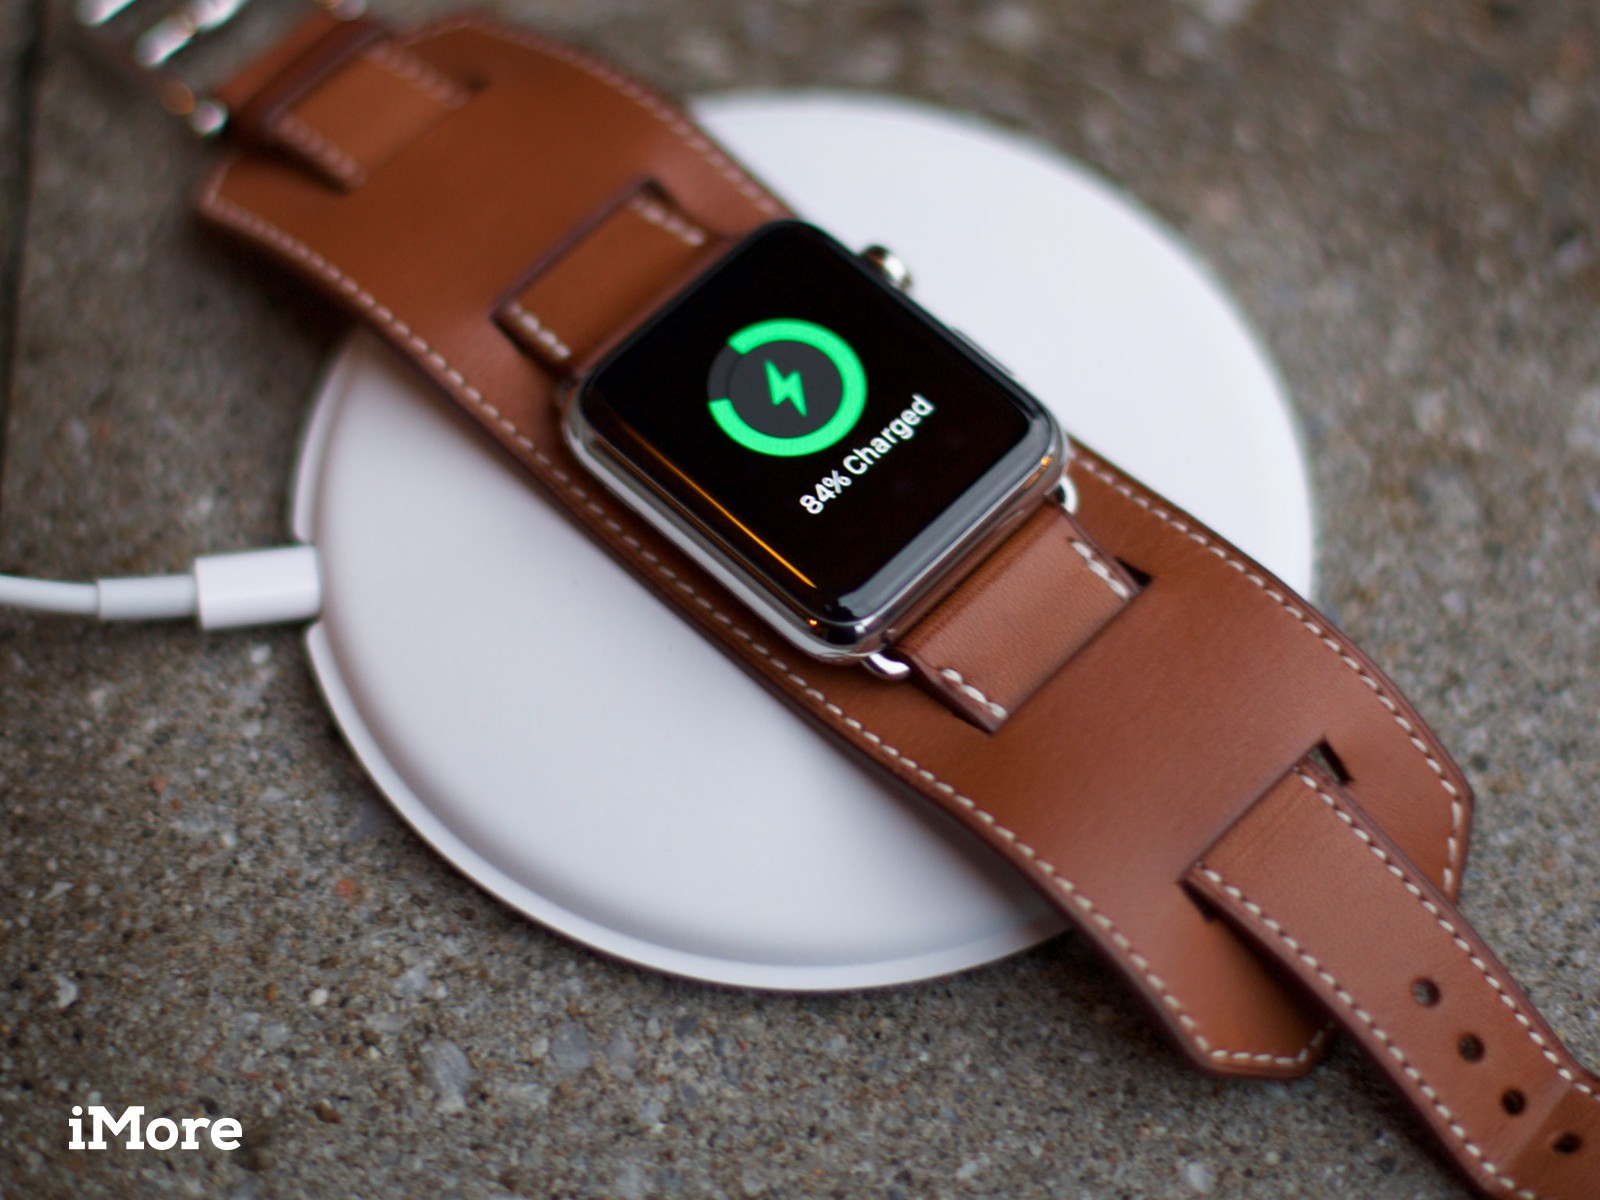 How to download watchOS 2.1 on your Apple Watch